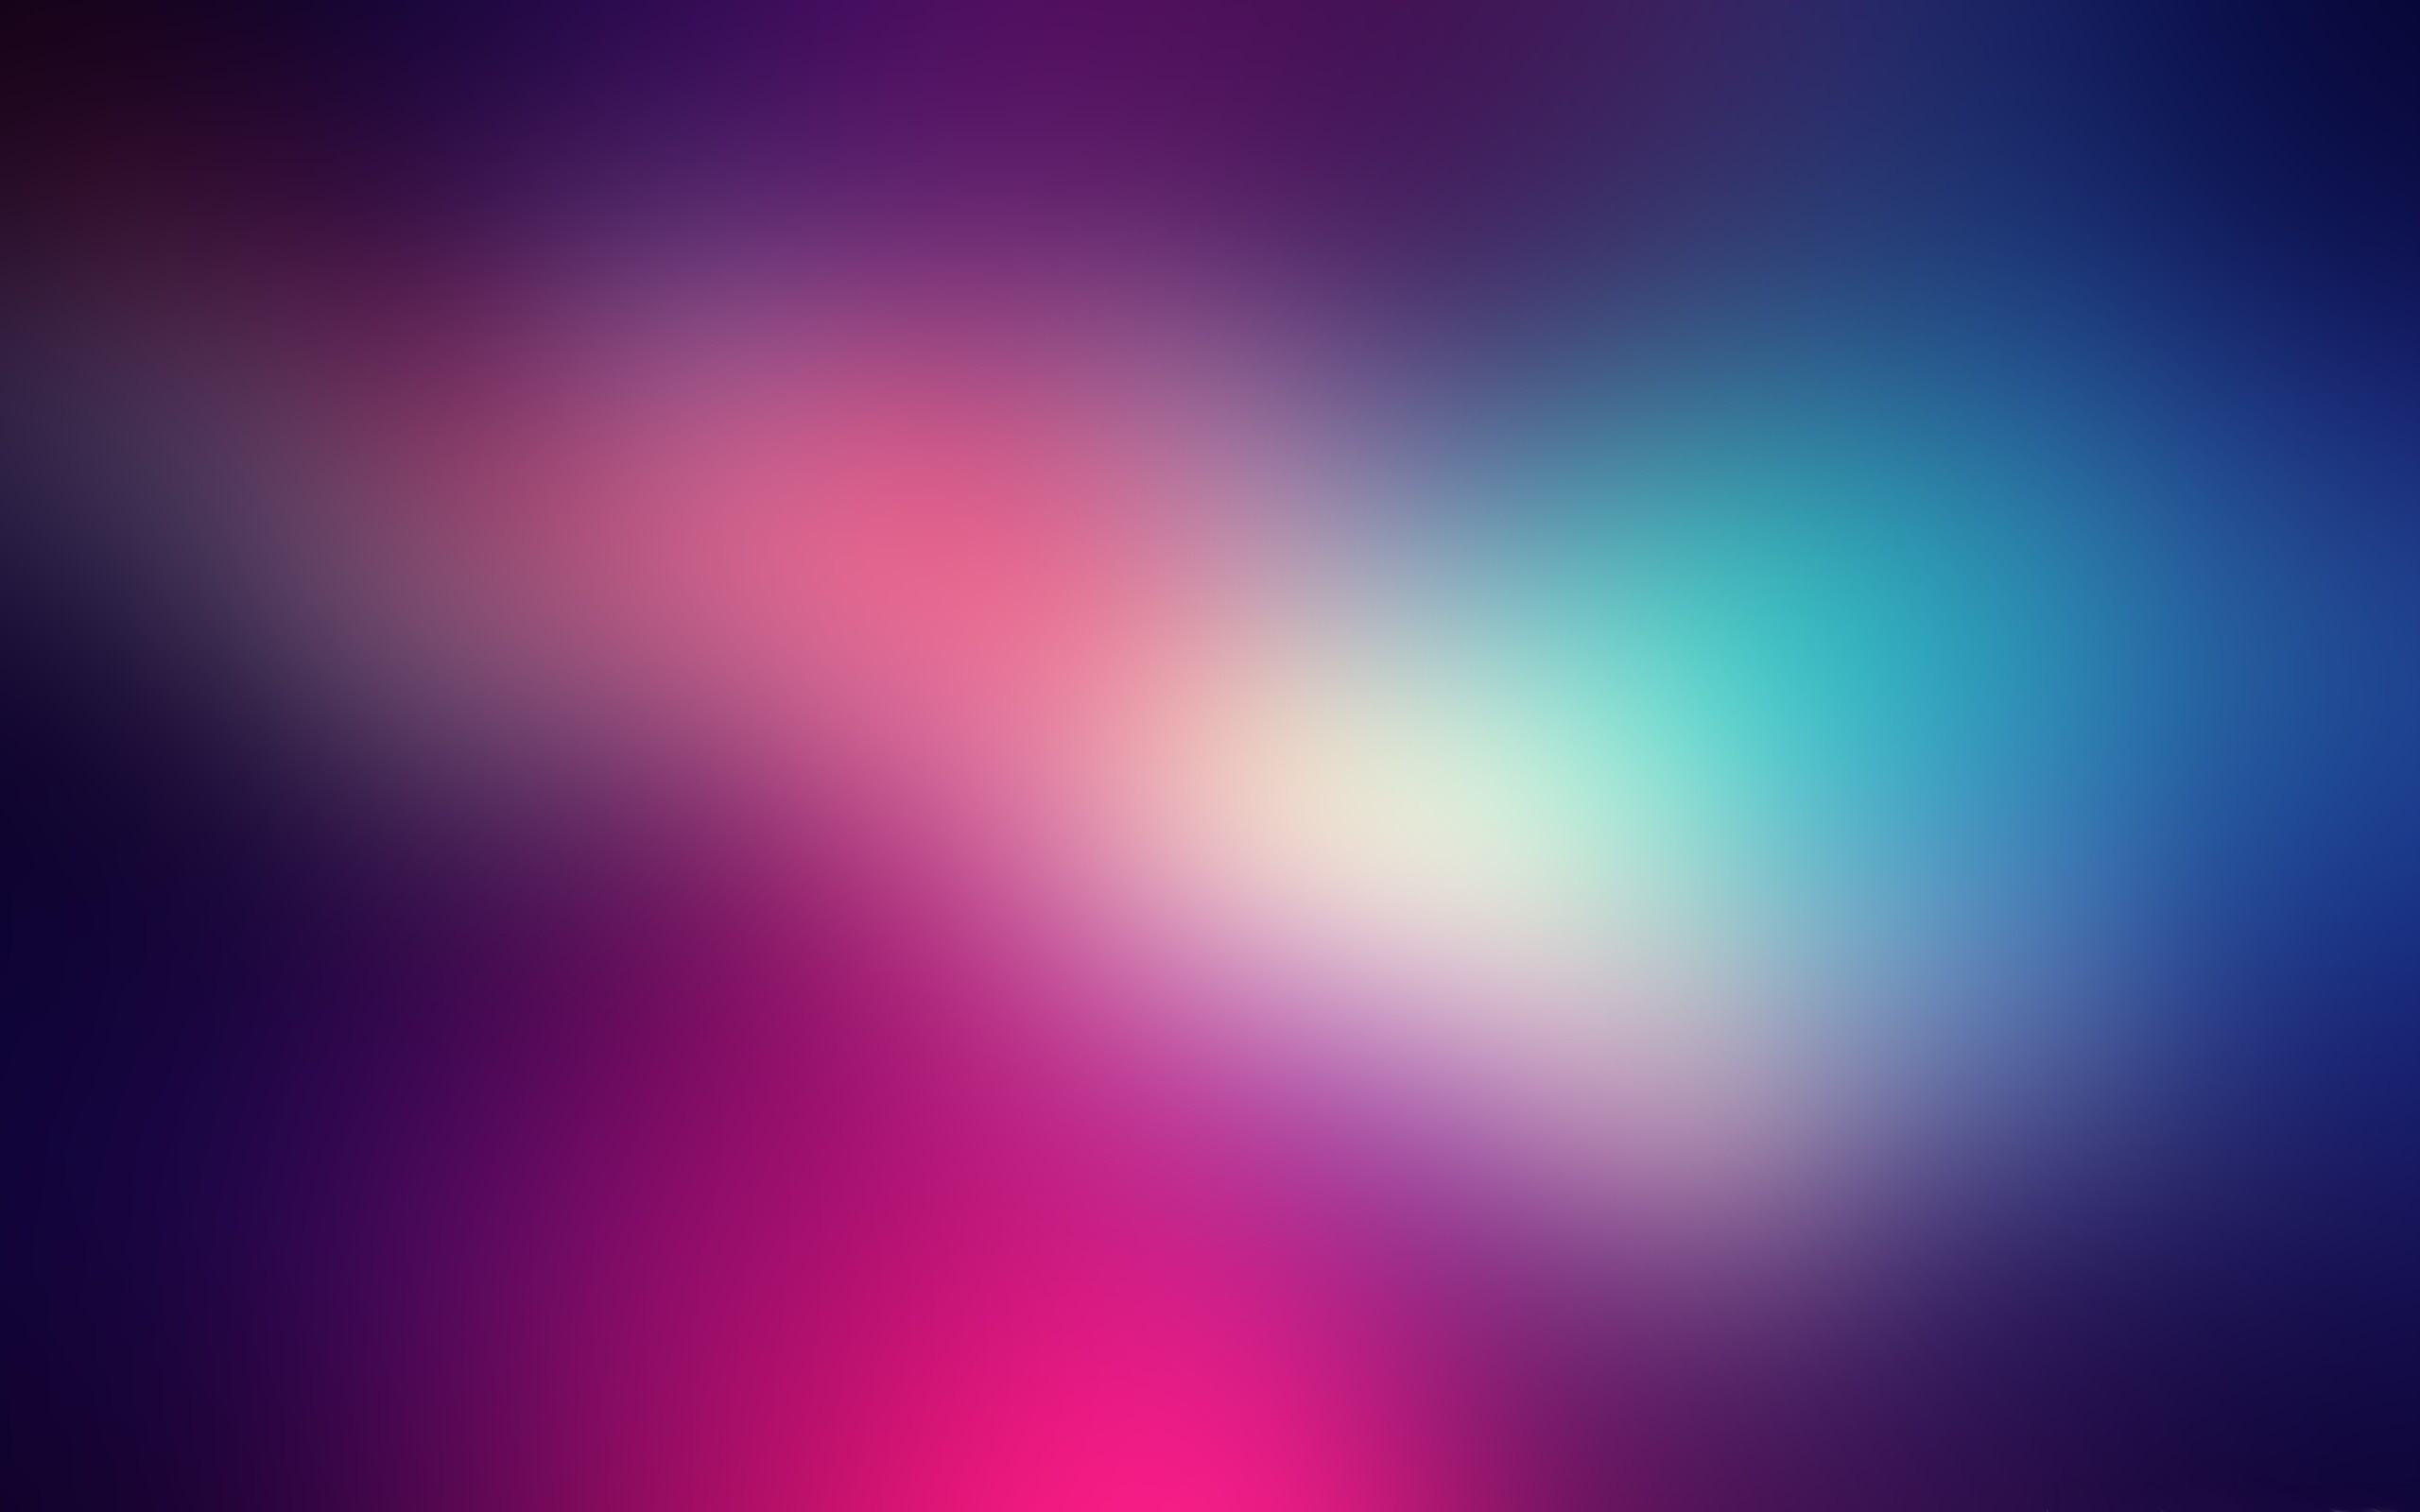 Abstract IOS7 Wallpaper